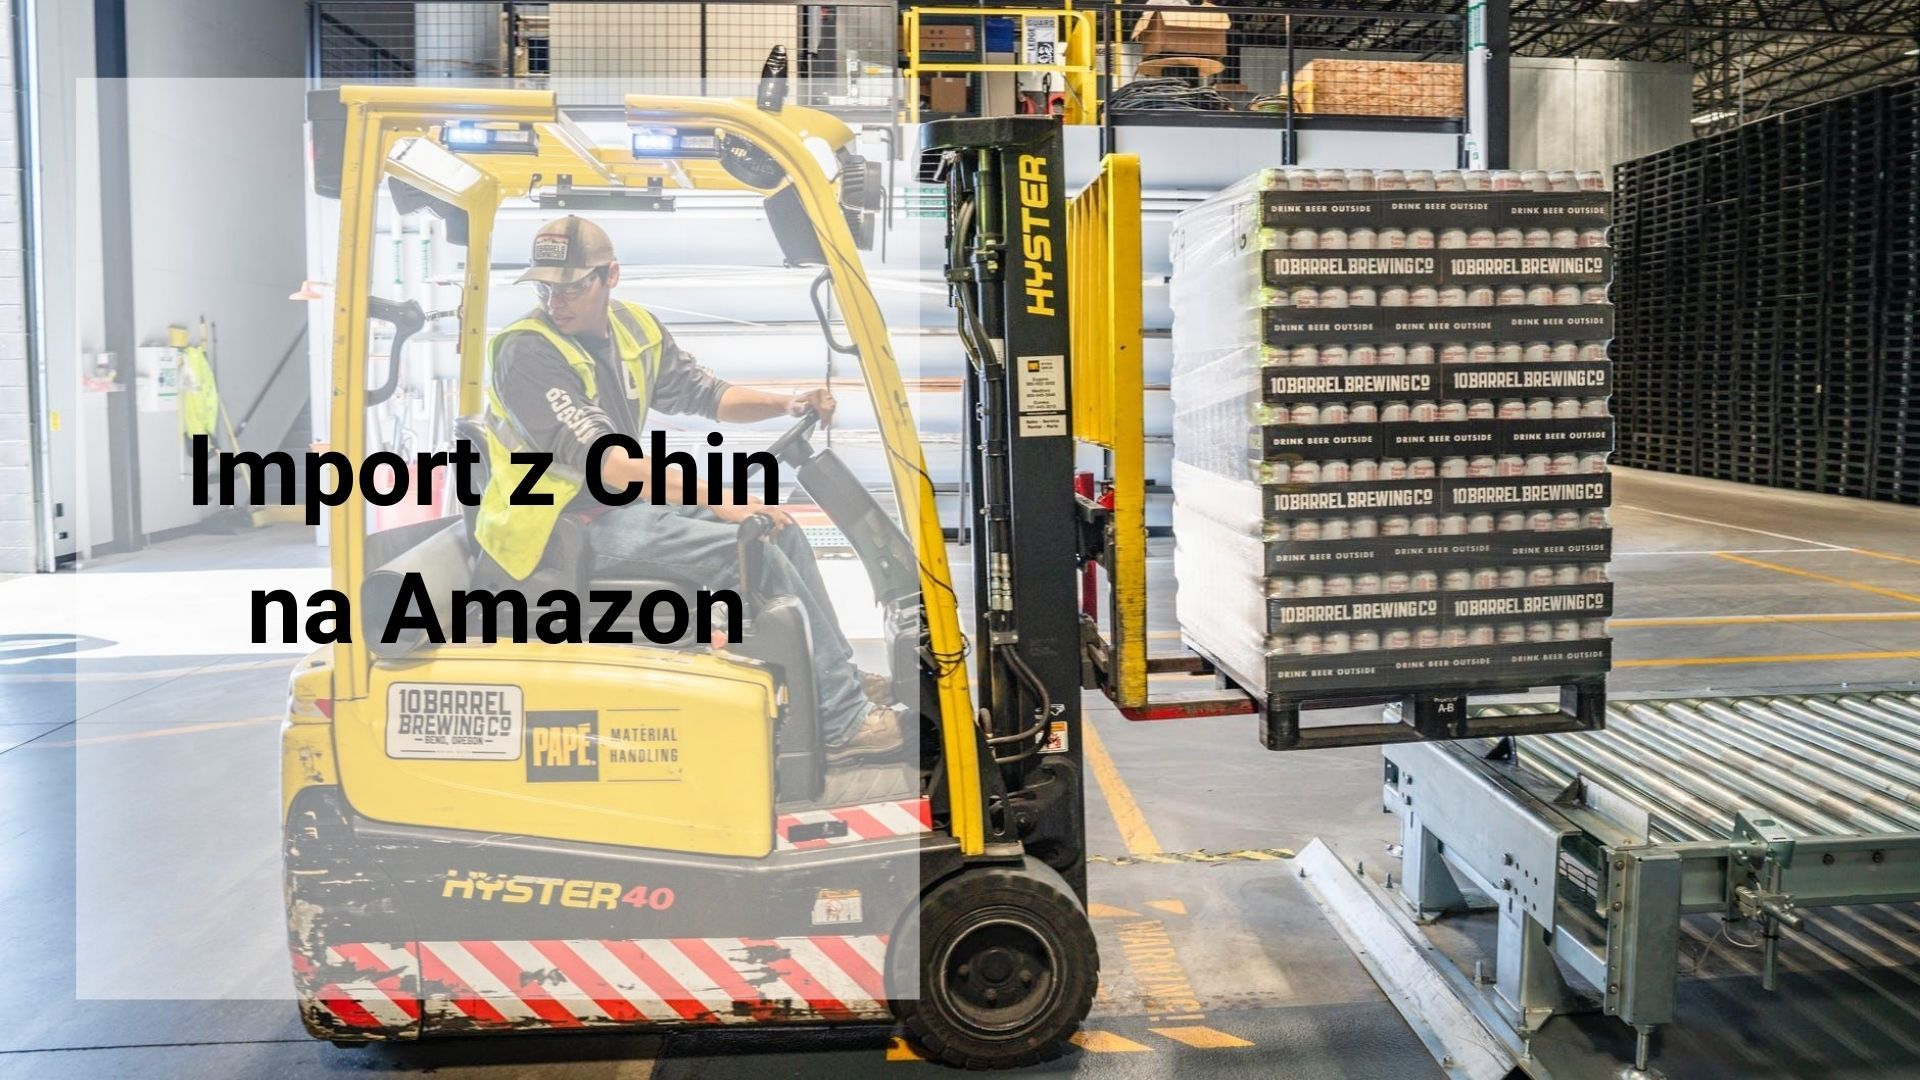 Import z Chin na Amazon